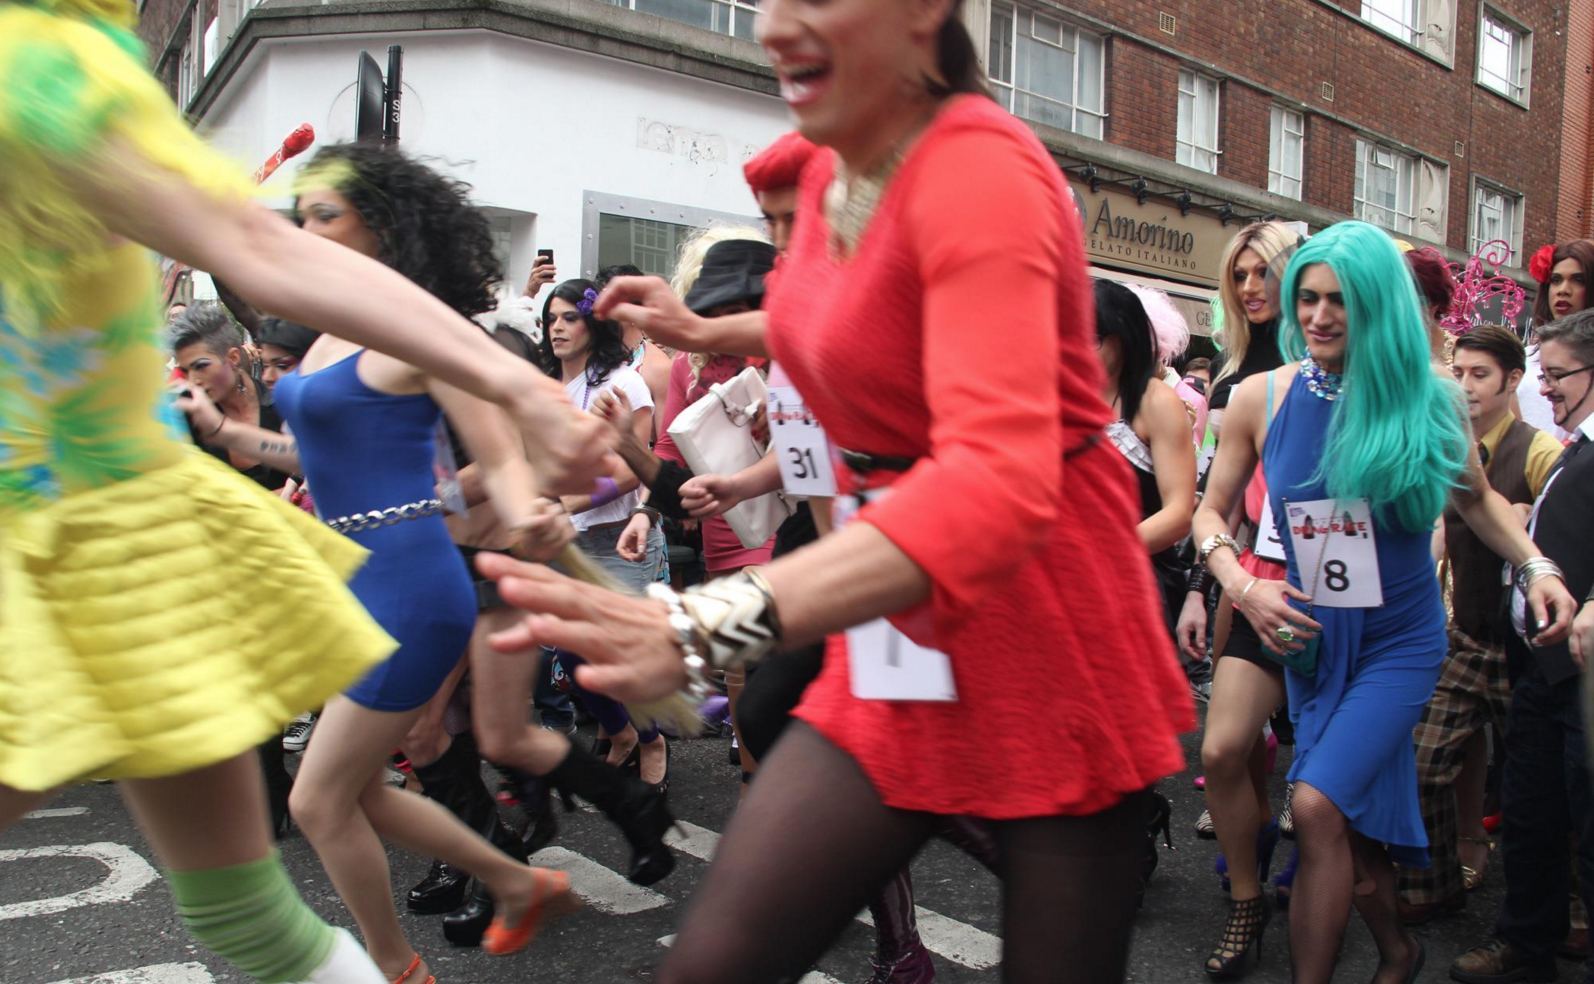 Dragqueen race in london